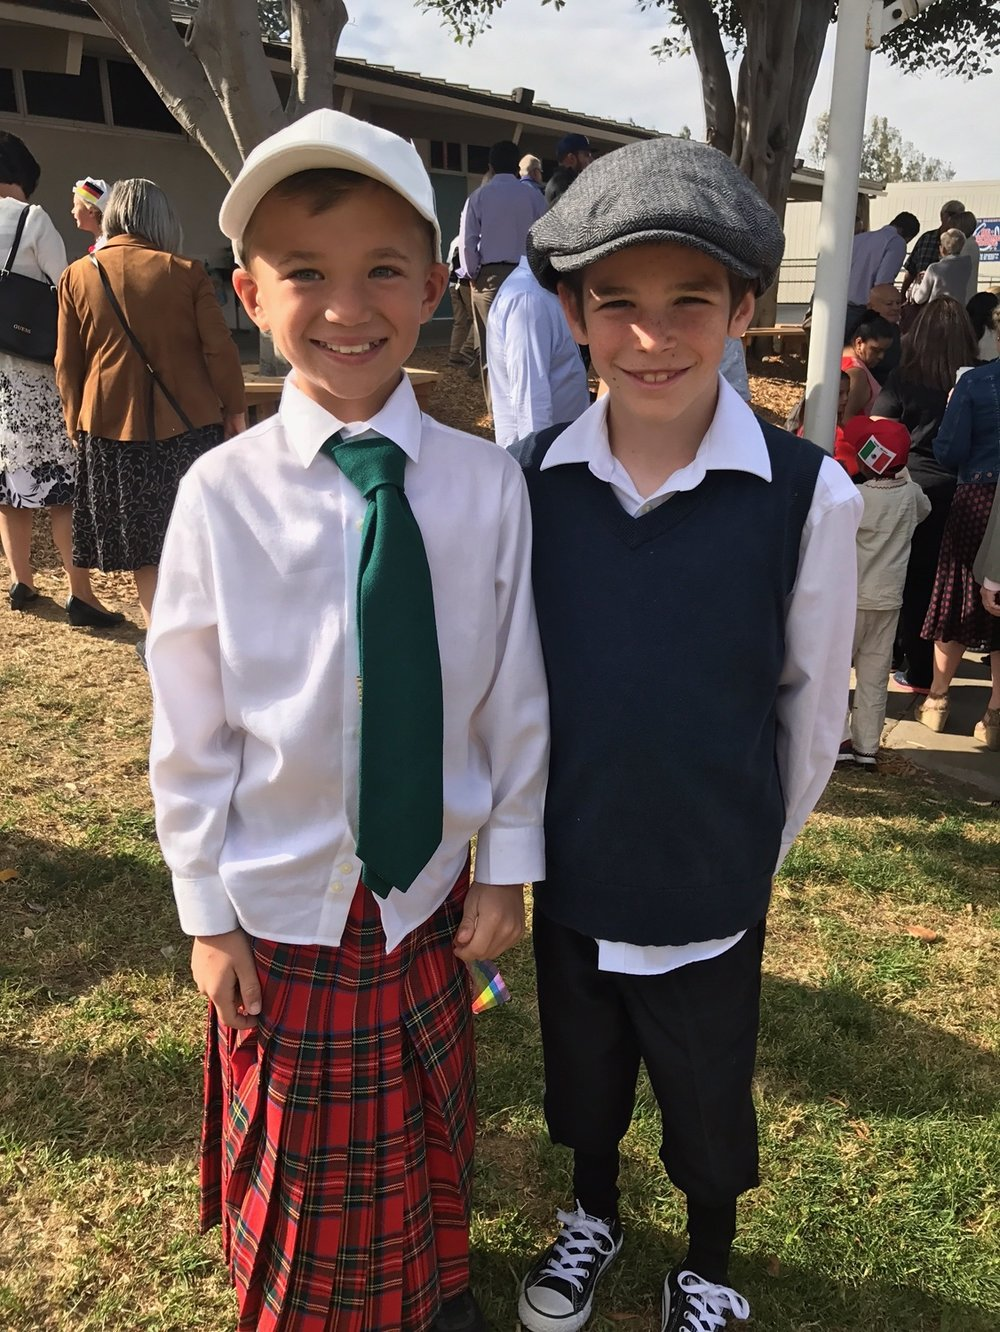 The dapper gents, James Piper and Caleb Posner, at Ancestor Day. Photo courtesy: Ali Posner